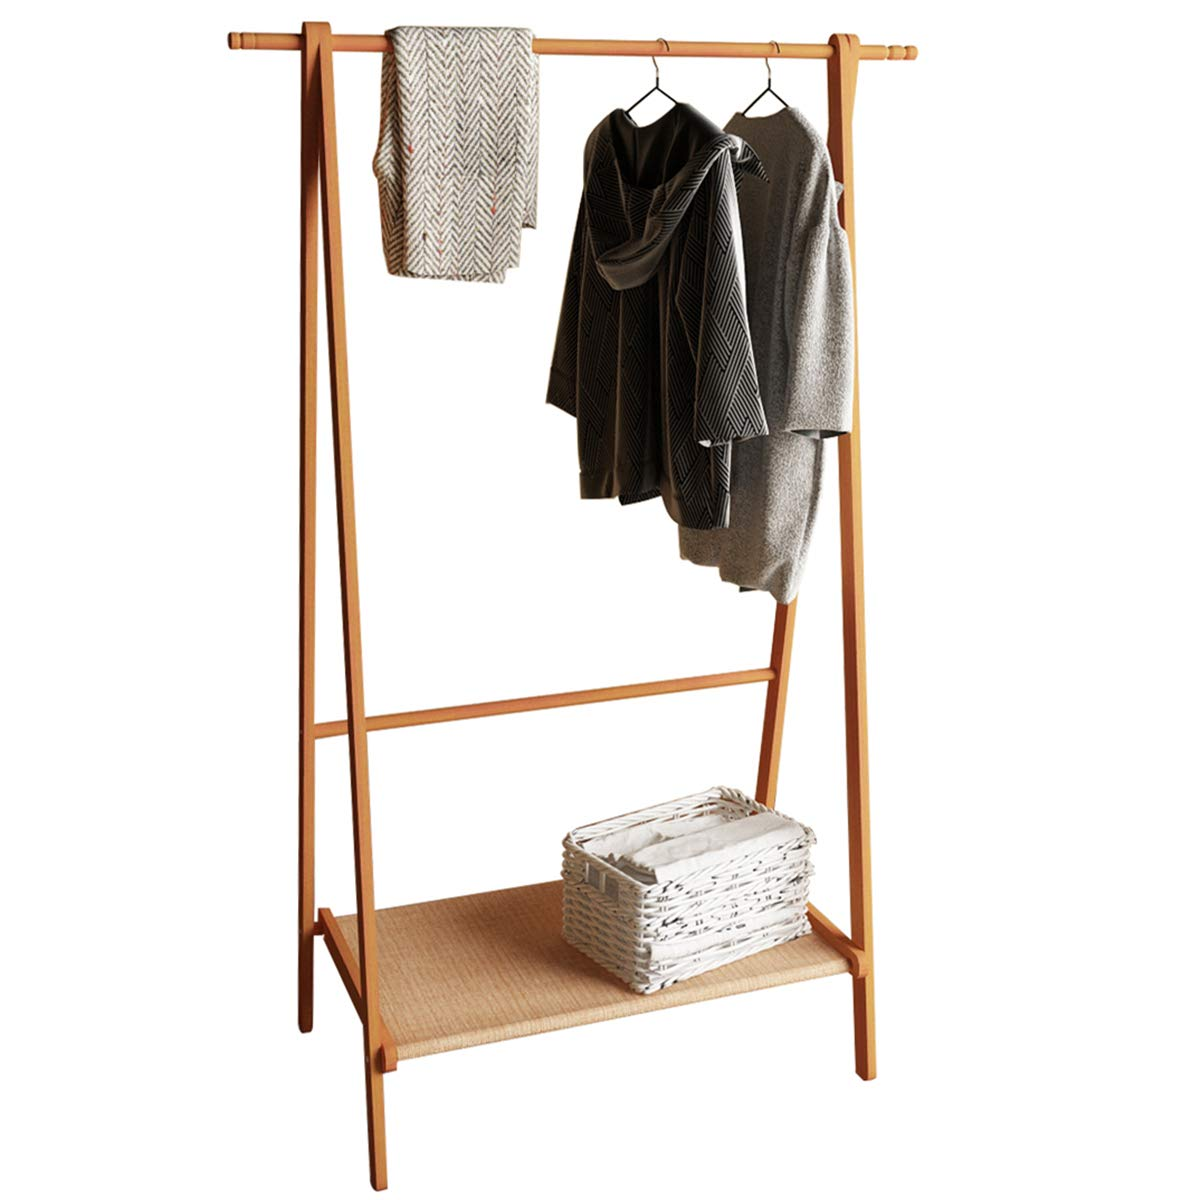 DlandHome Solid Wood Clothing Garment Rack, Entryway Free Standing Coat Stand Organizer Lower Storage Shelf Shoes Clothes, BS2001-HC Honey Color, 1 Pack